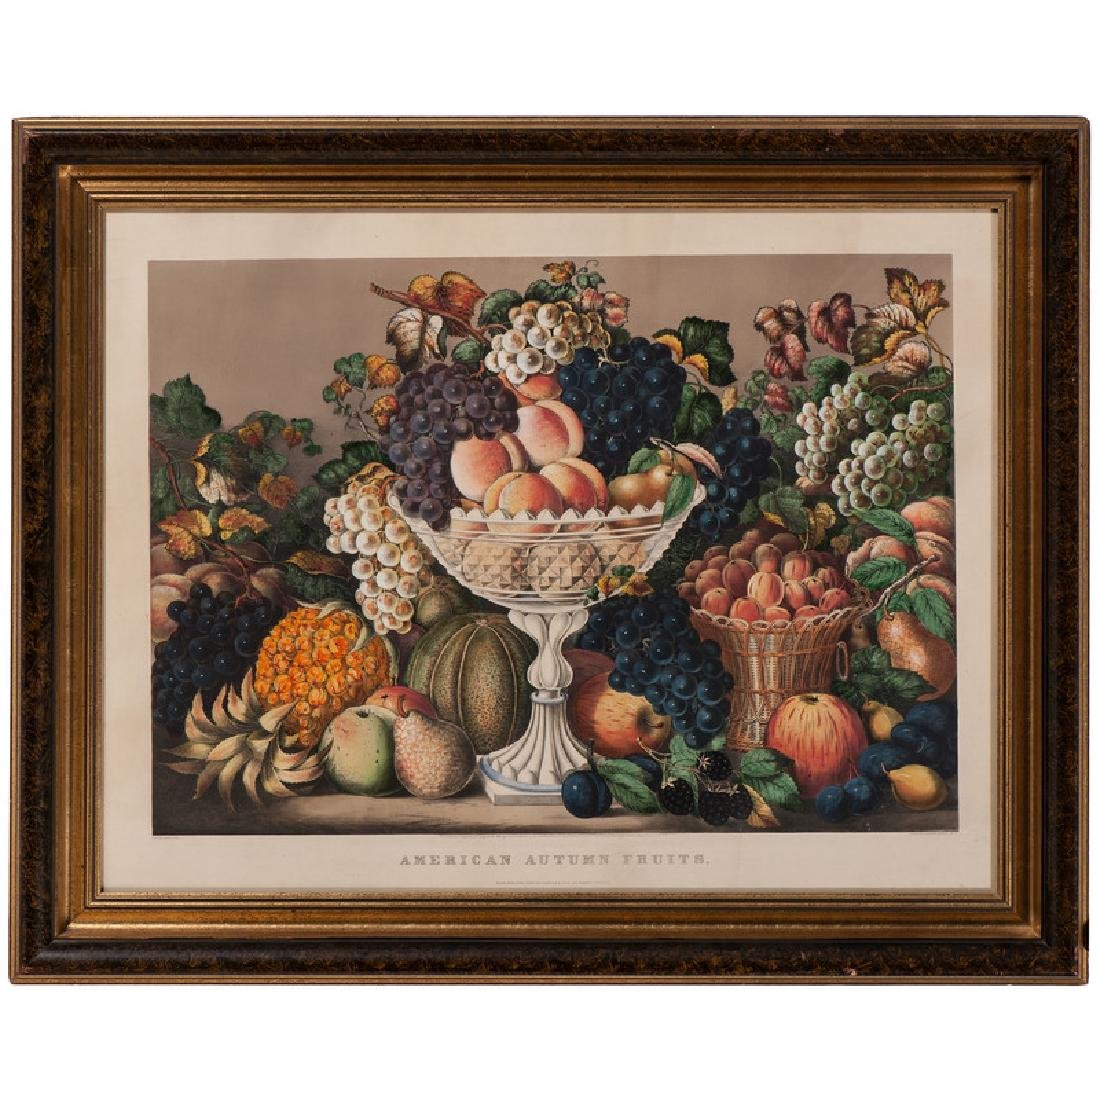 American Autumn Fruits Hand-Colored Lithograph by